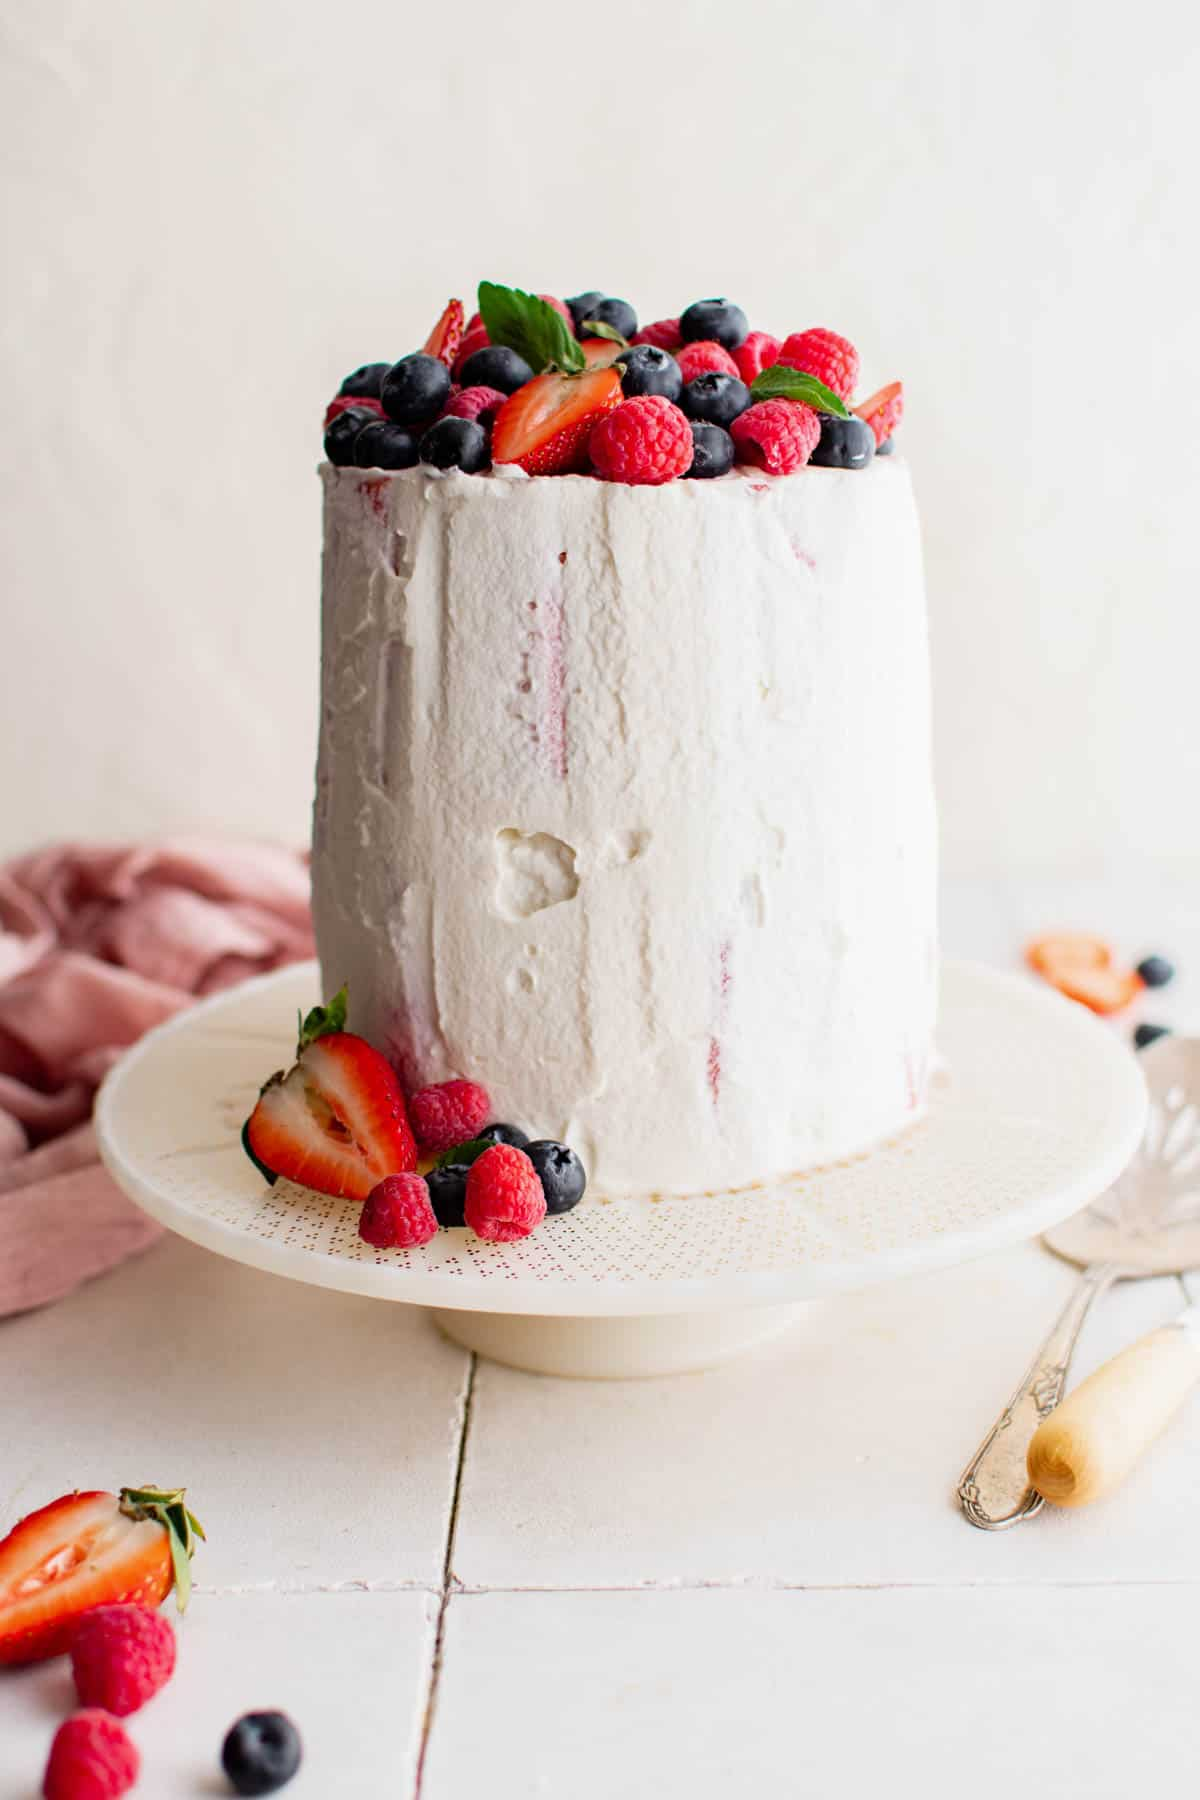 a whole fresh watermelon cake with fresh berries on top